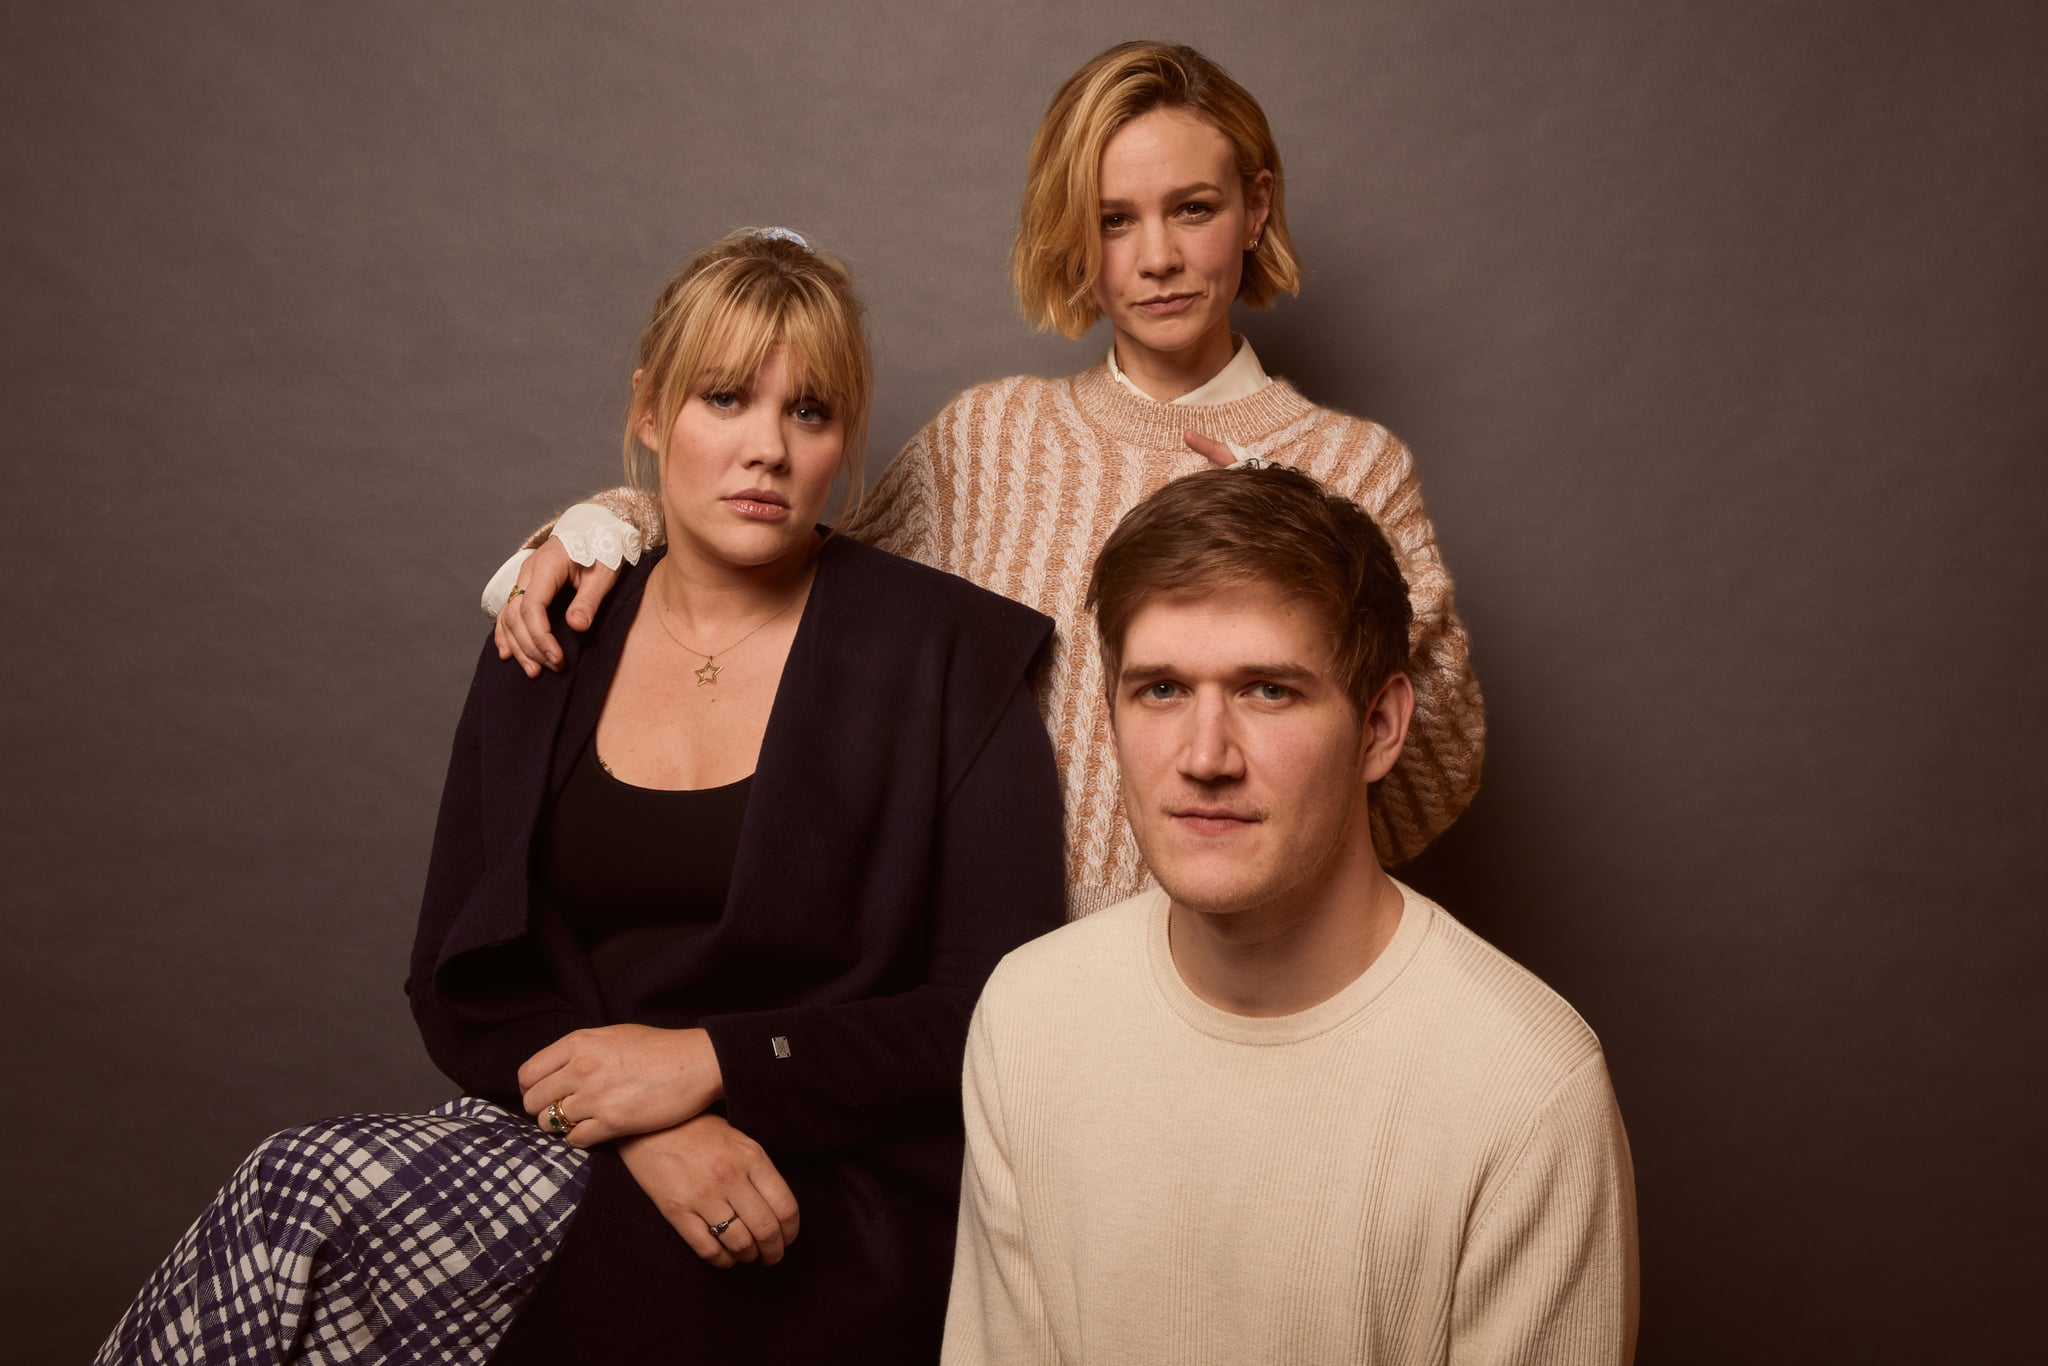 PARK CITY, UT - JANUARY 25: Emerald Fennell, Carey Mulligan and Bo Burnham of the Promising Young Woman pose for a portrait at the Pizza Hut Lounge on January 25, 2020 in Park City, Utah.  (Photo by Emily Assiran / Getty Images for Pizza Hut)